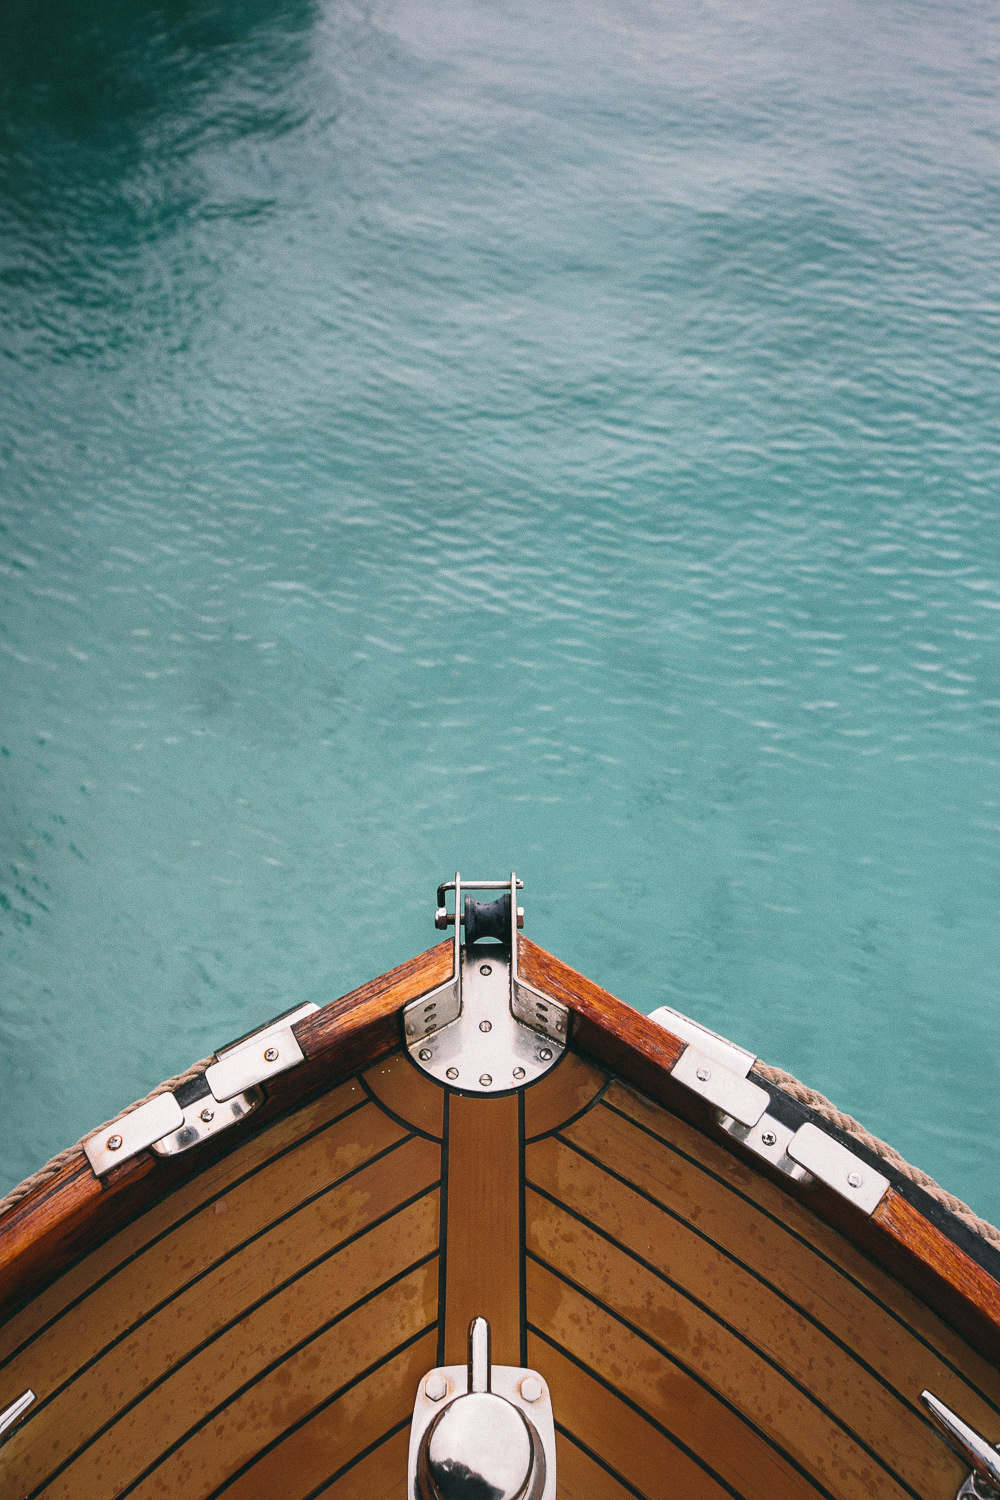 Four Seasons Bora Bora Wedding - Gorgeous shot of the boat in the water